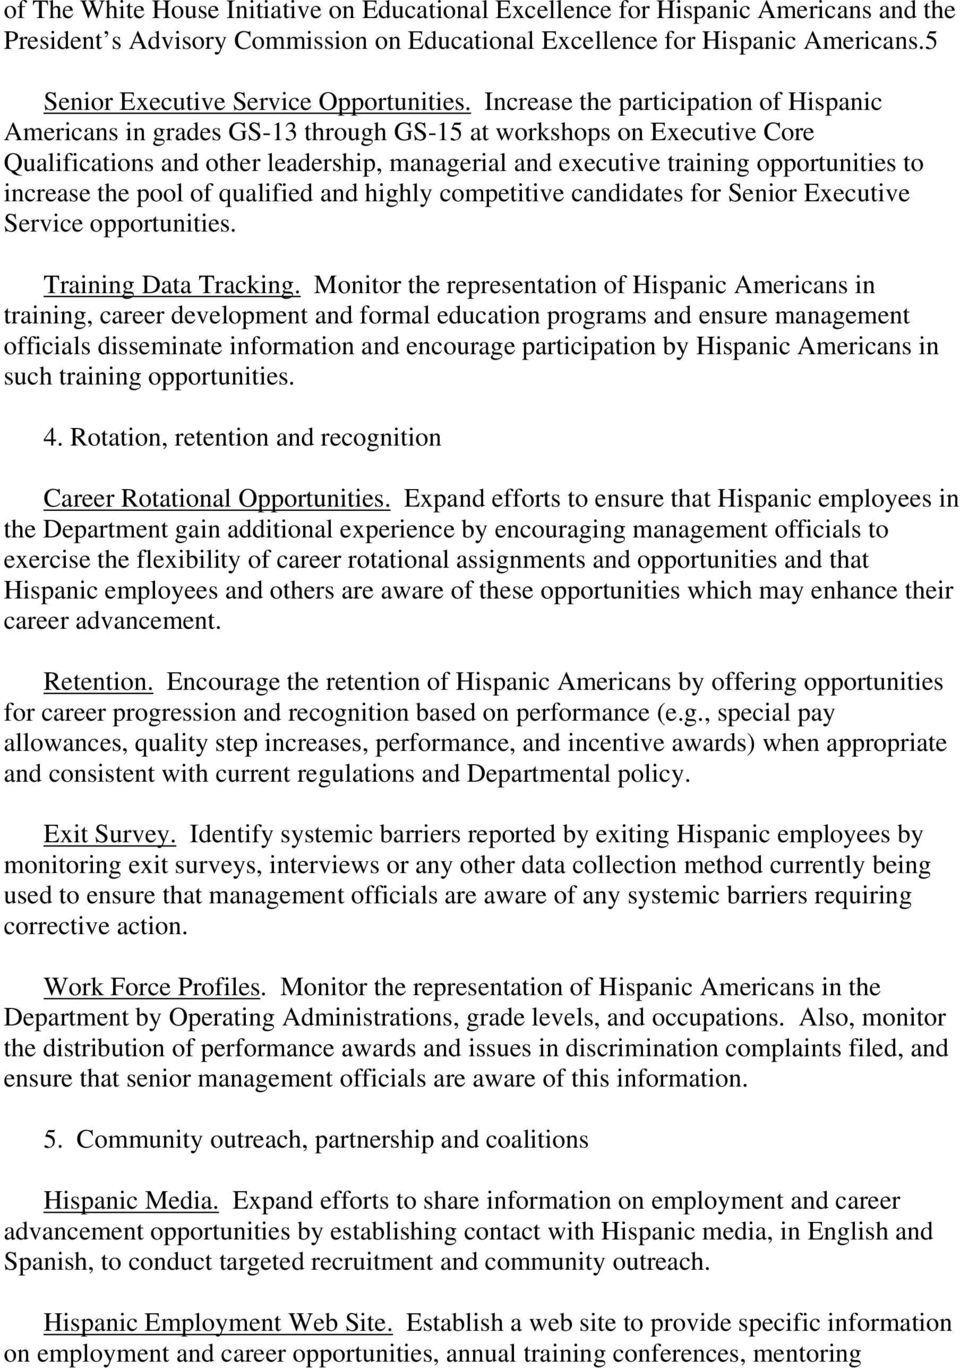 Increase the participation of Hispanic Americans in grades GS-13 through GS-15 at workshops on Executive Core Qualifications and other leadership, managerial and executive training opportunities to